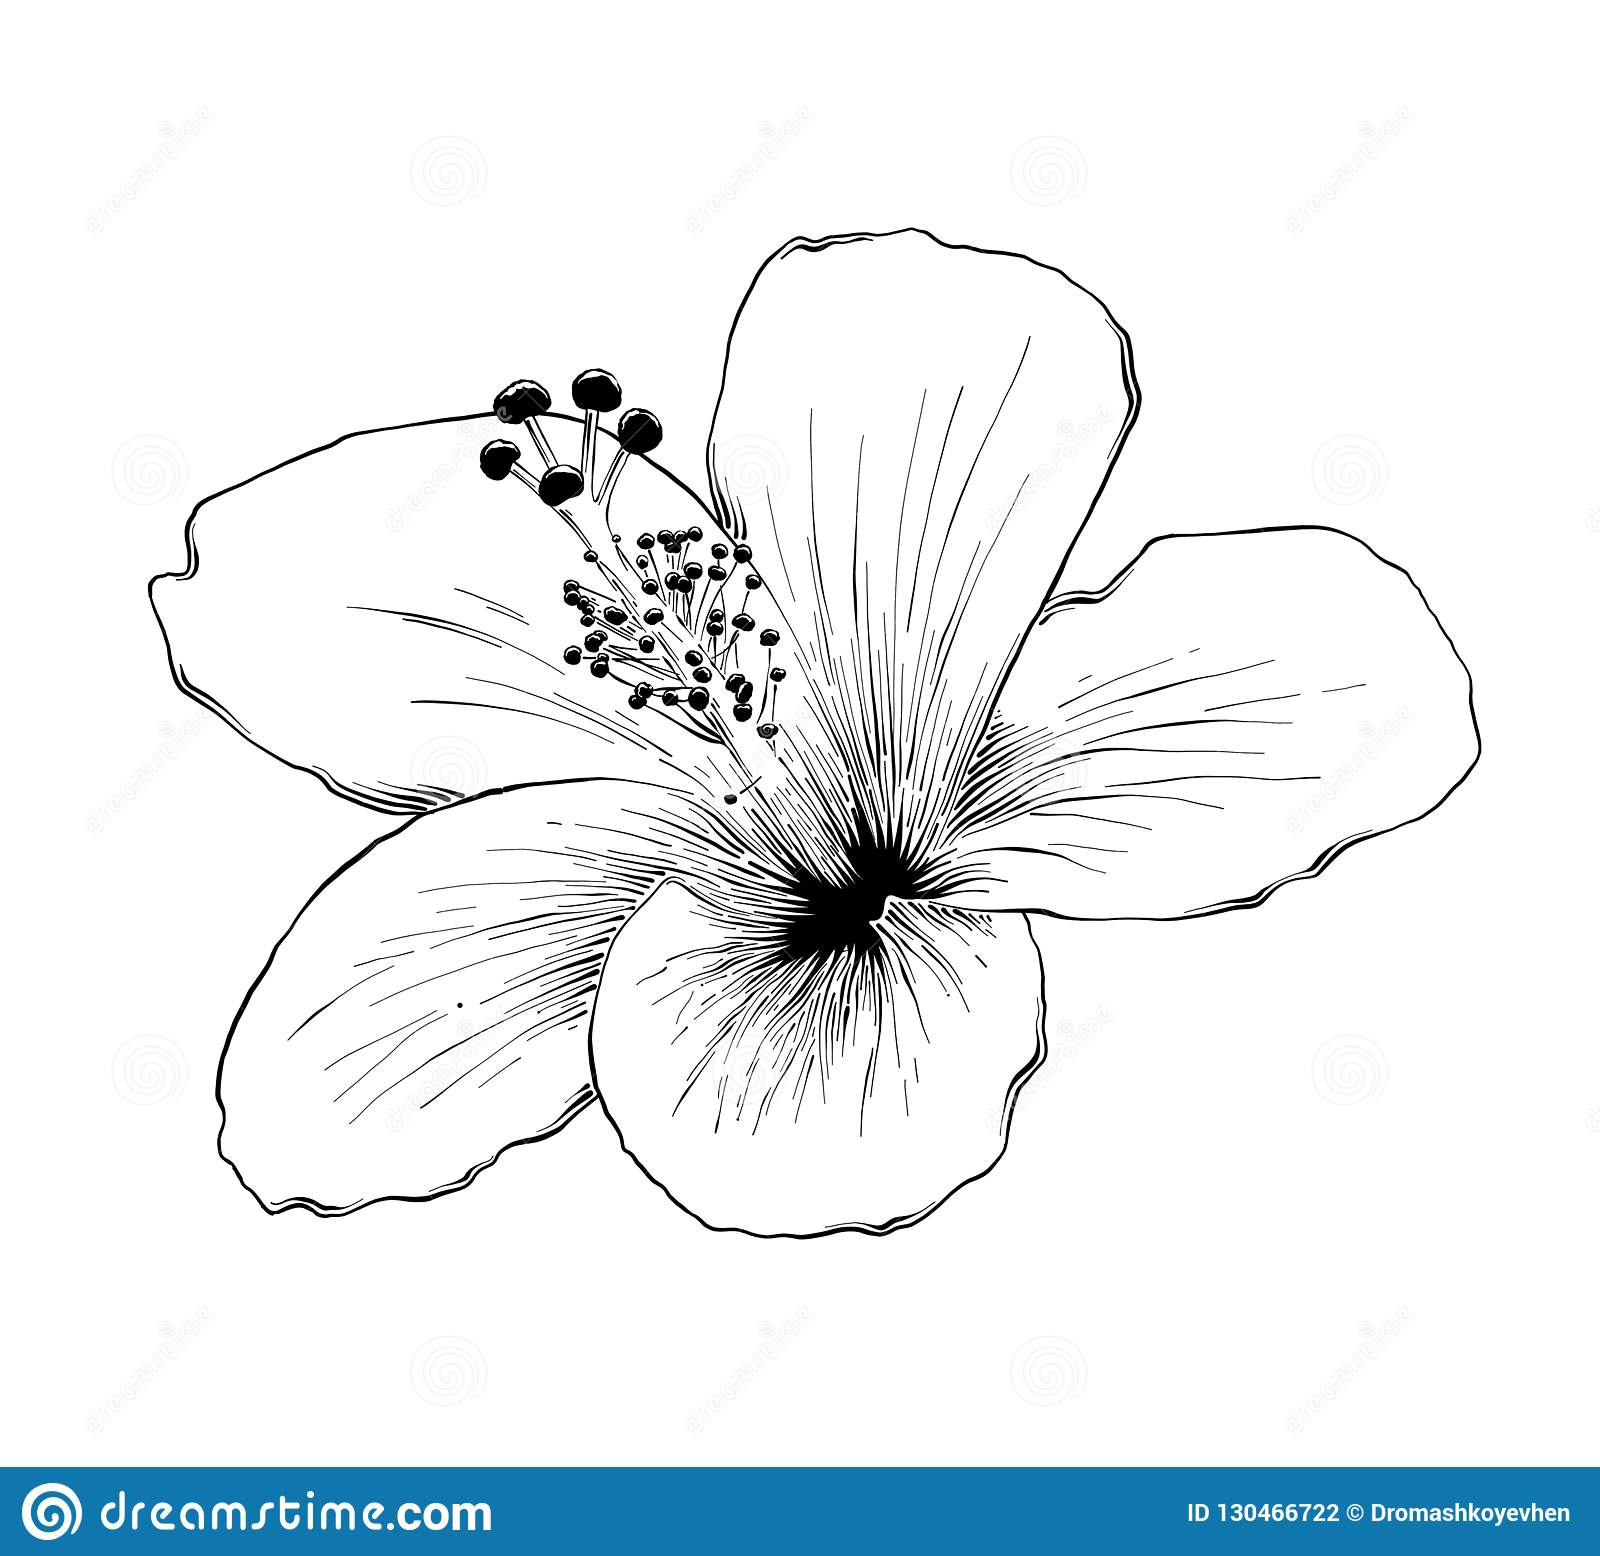 Hand Drawn Sketch Of Hawaiian Hibiscus Flower In Black Isolated On